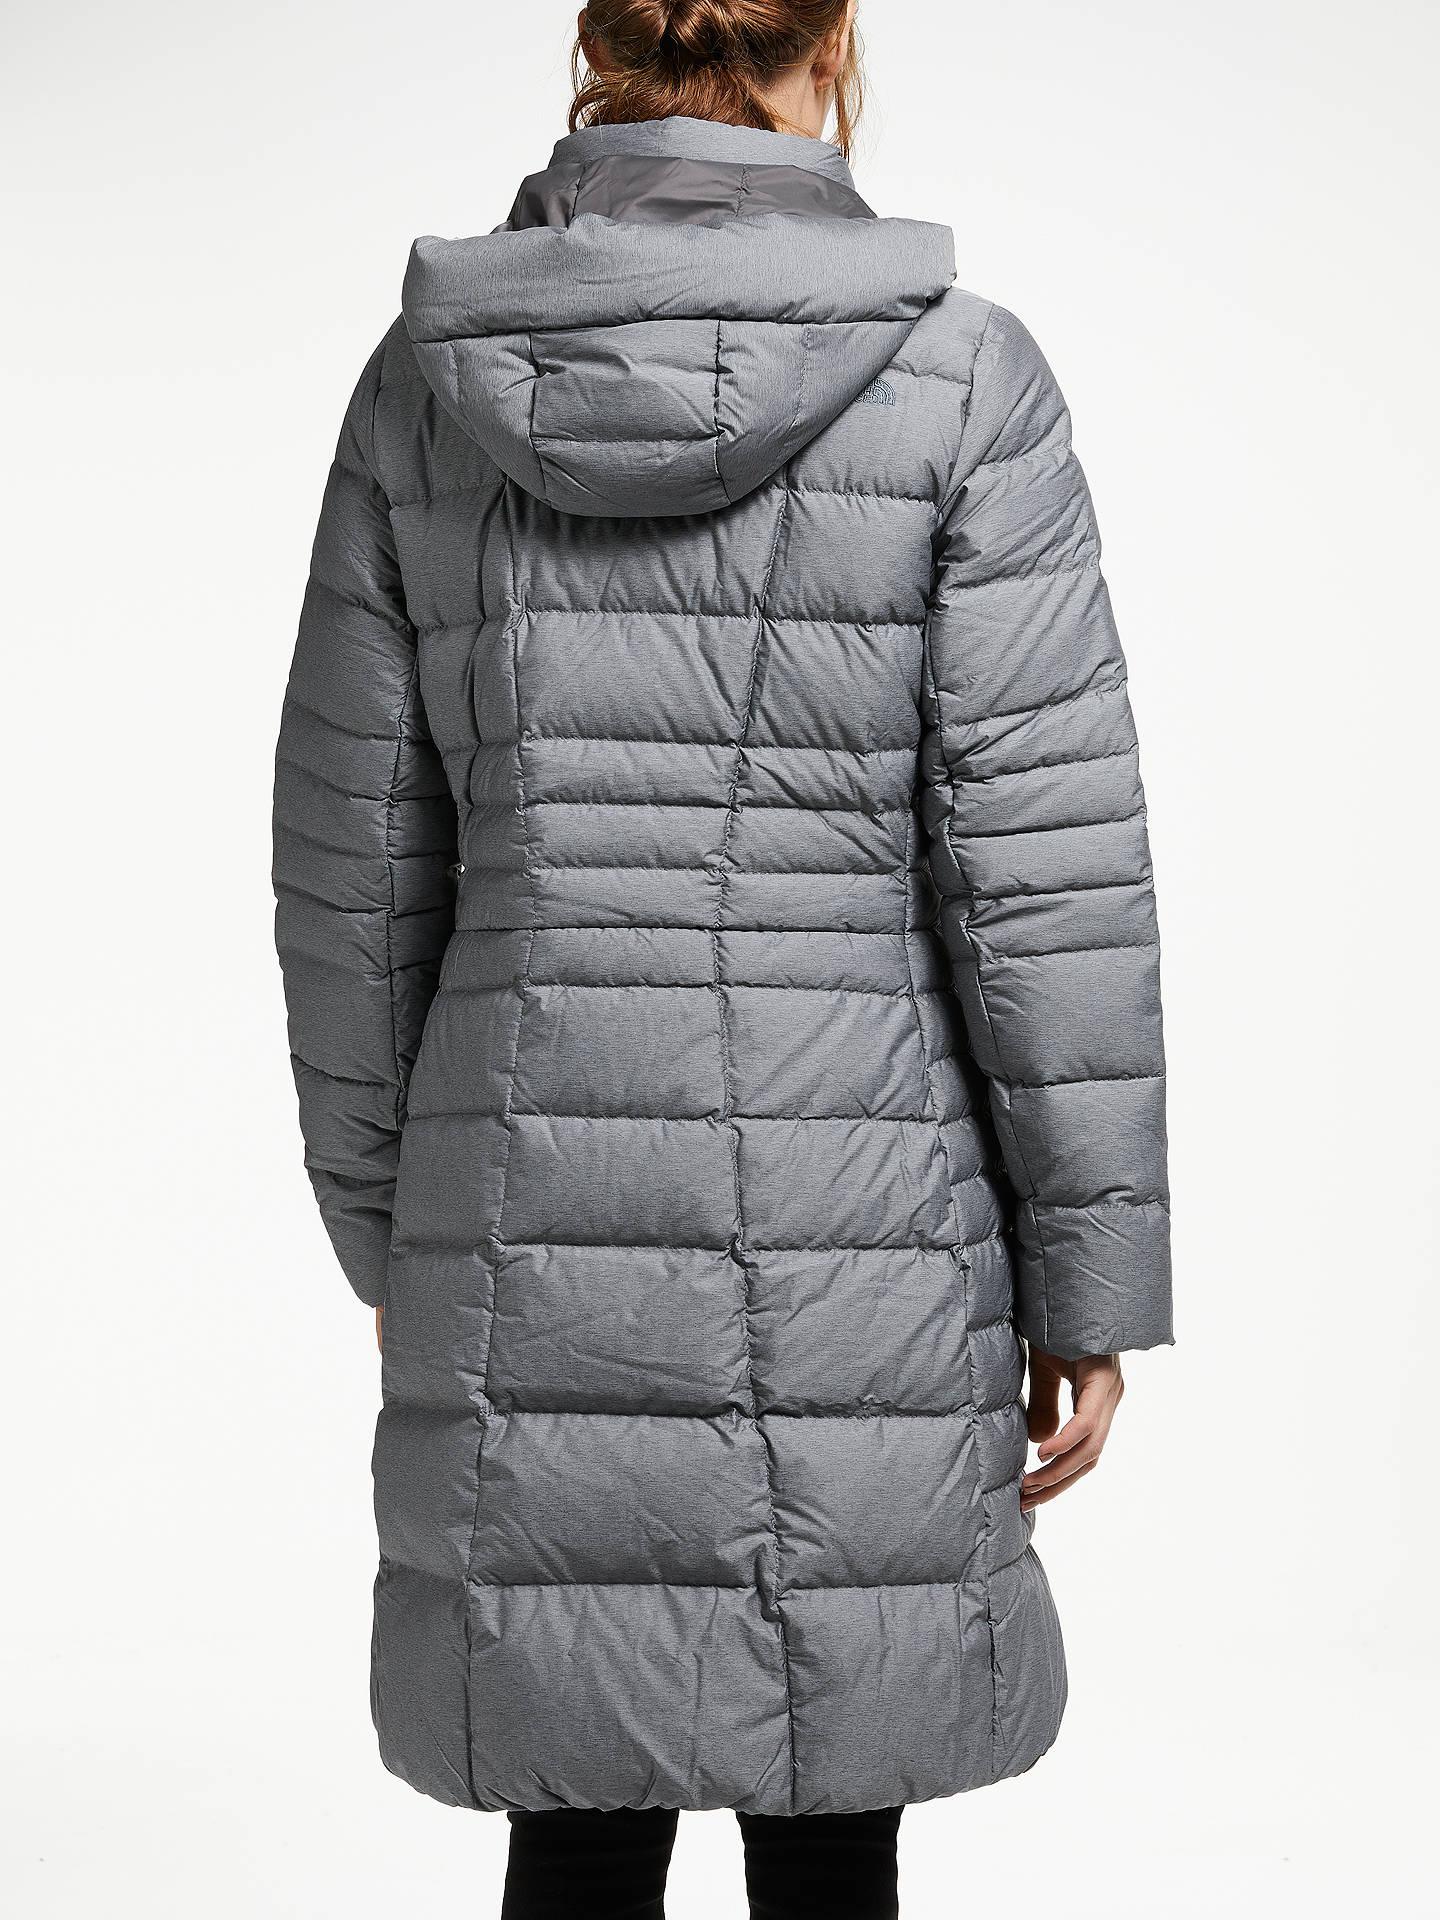 Buy The North Face Metro Women's Parka, Medium Grey Heather, S Online at johnlewis.com